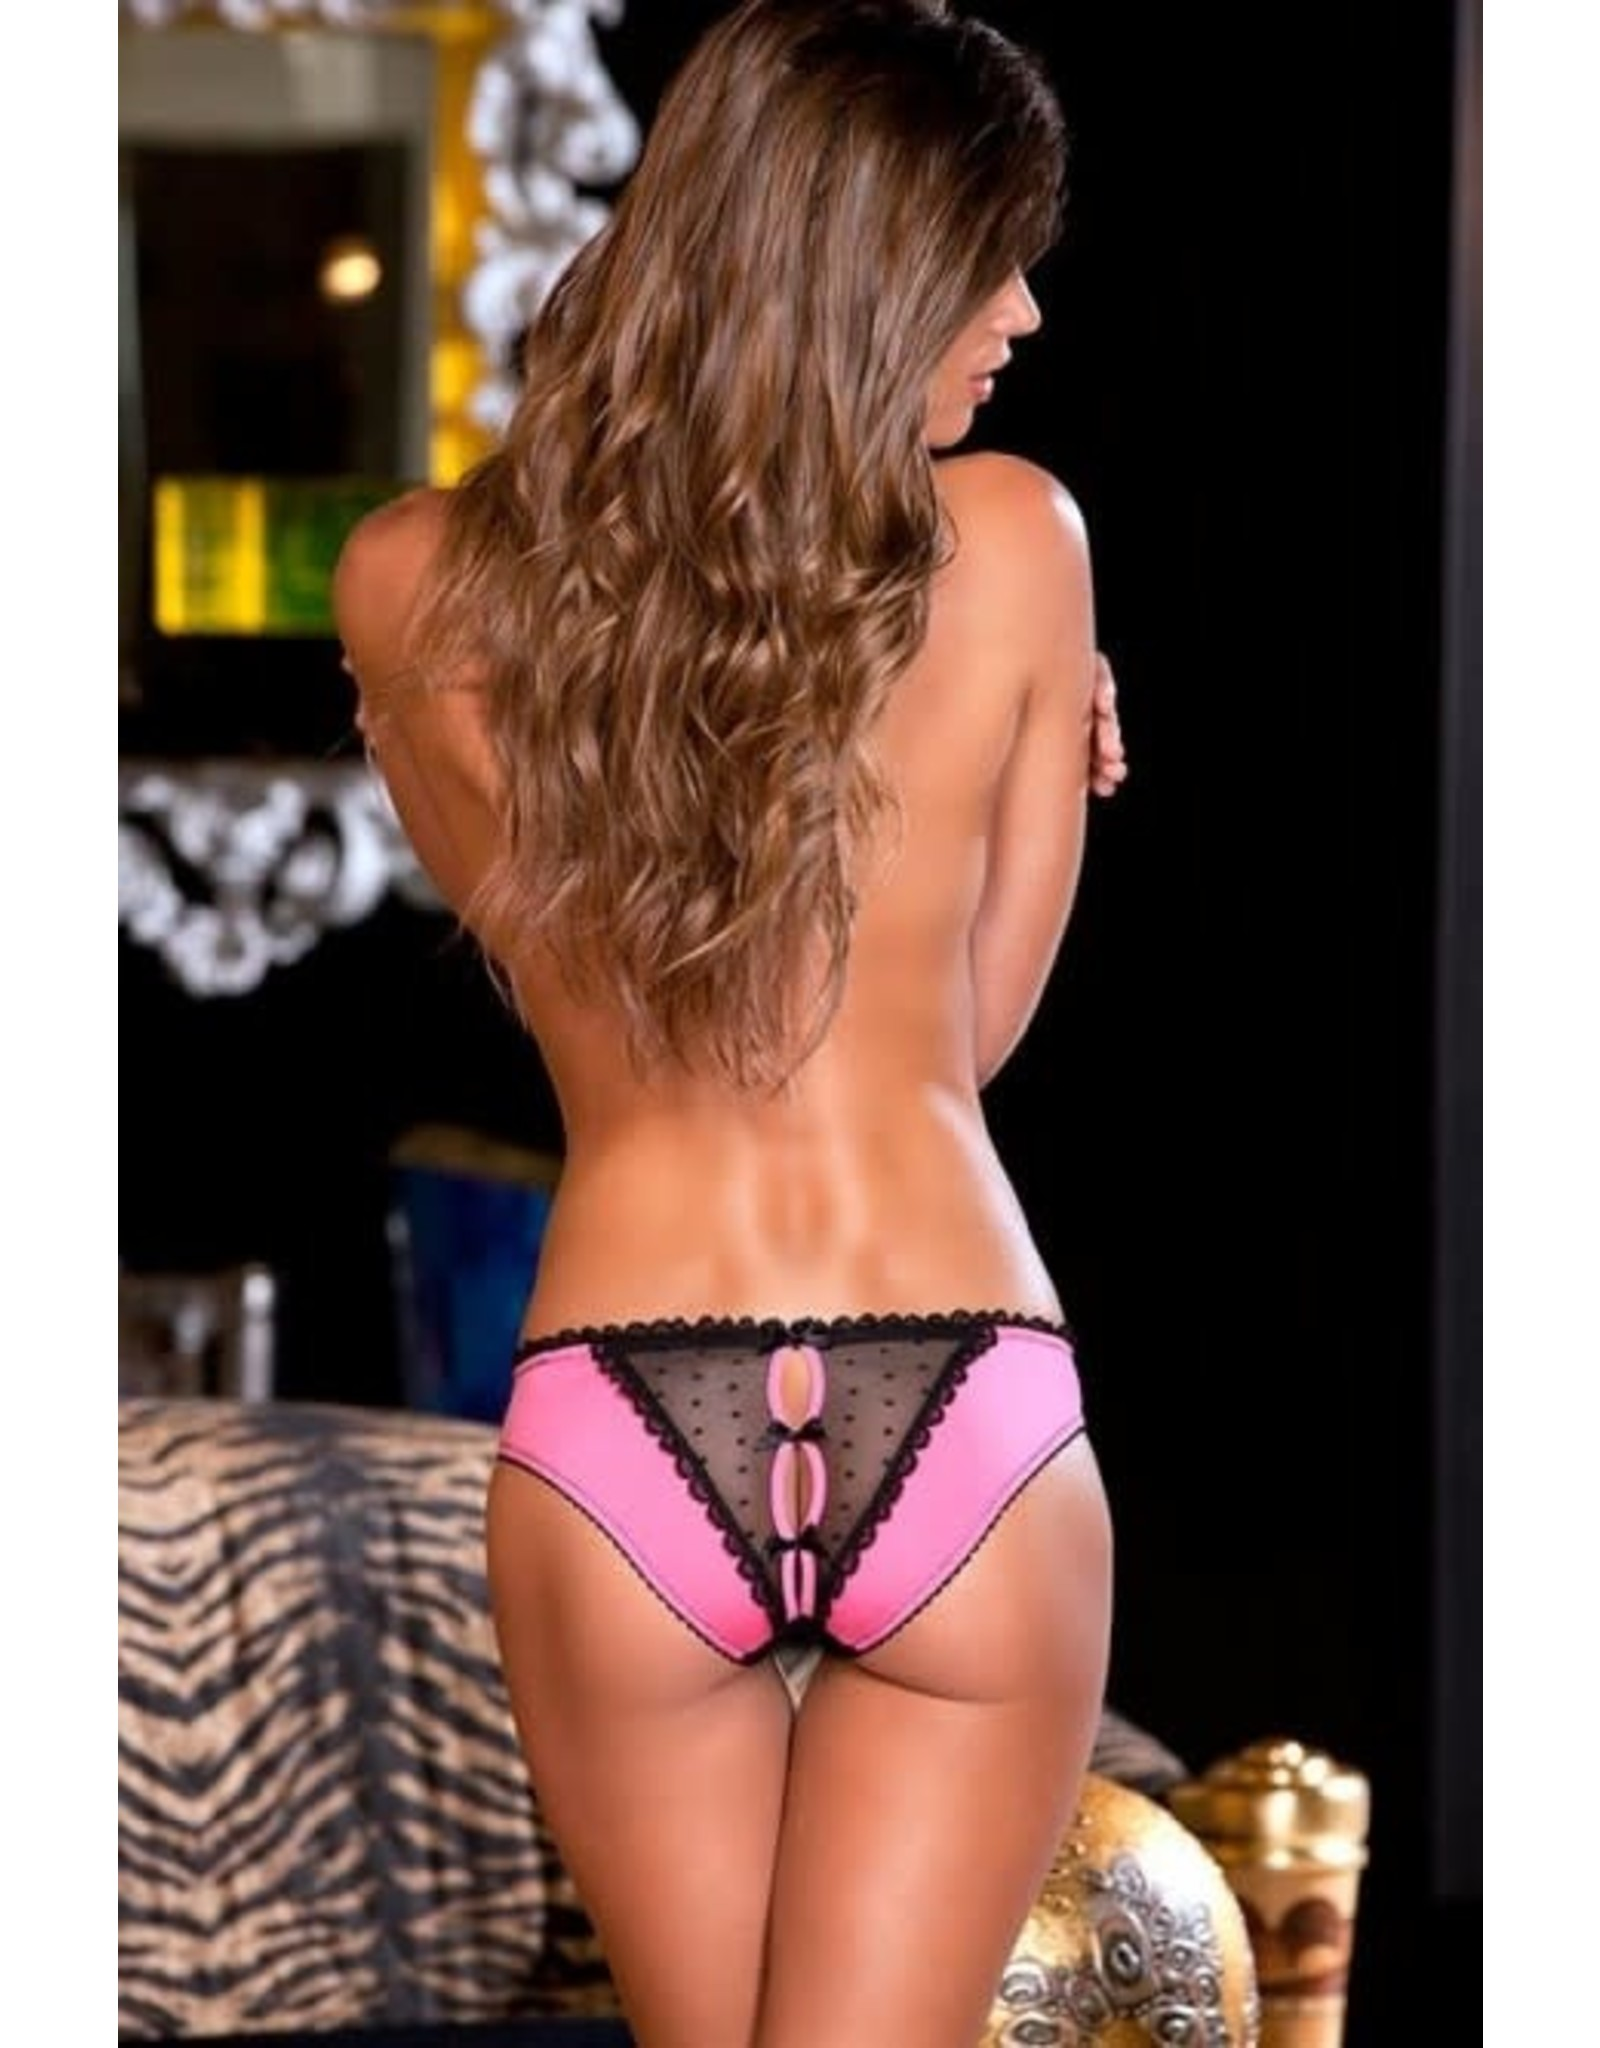 FRILLS CROTCHLESS PANTY WITH BACK BOWS - PINK - S/M